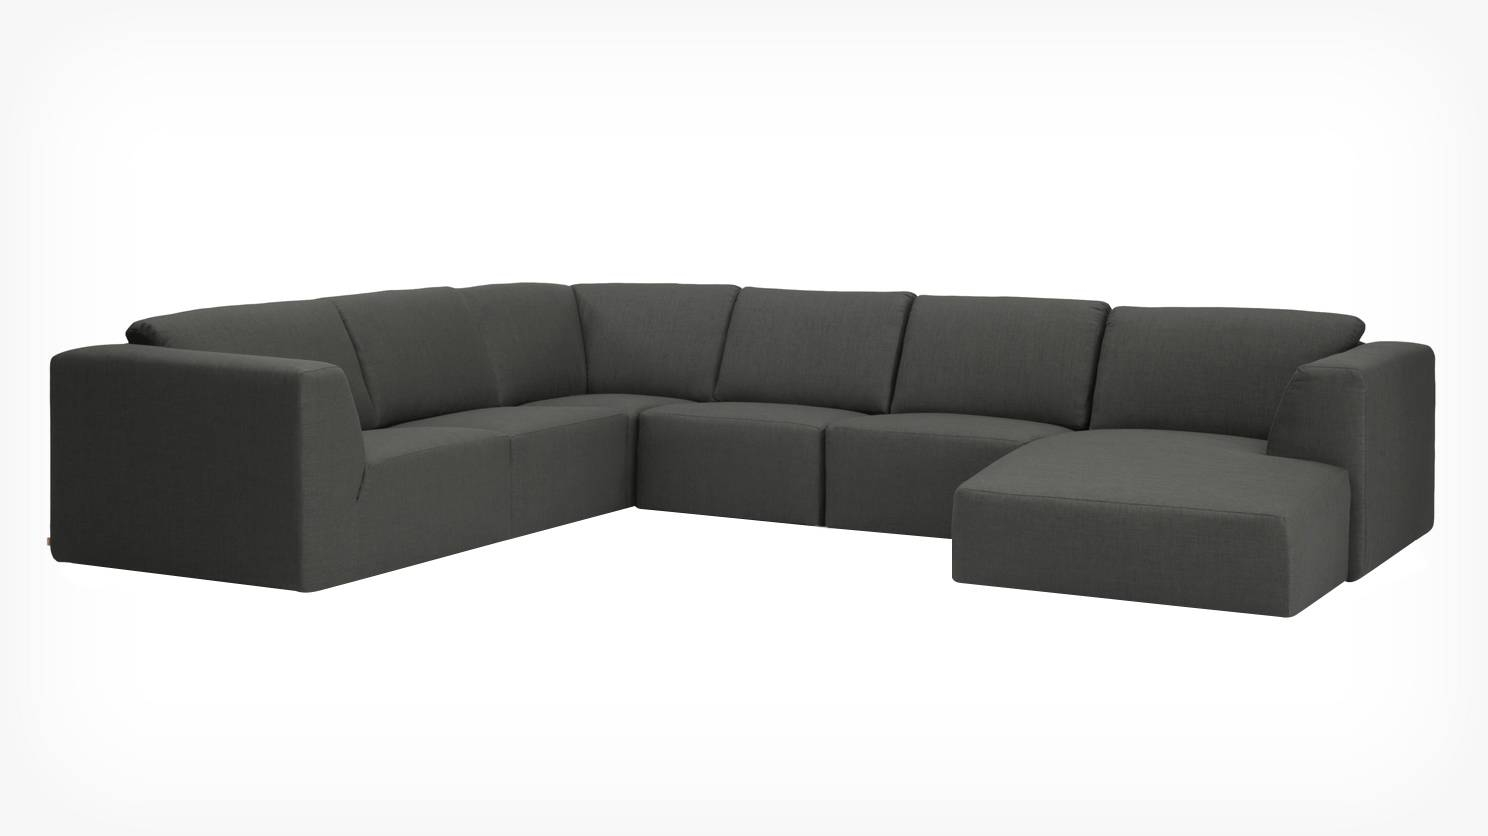 Eq3 | Morten 6-Piece Sectional Sofa With Chaise - Fabric in 6 Piece Sectional Sofas Couches (Image 7 of 15)